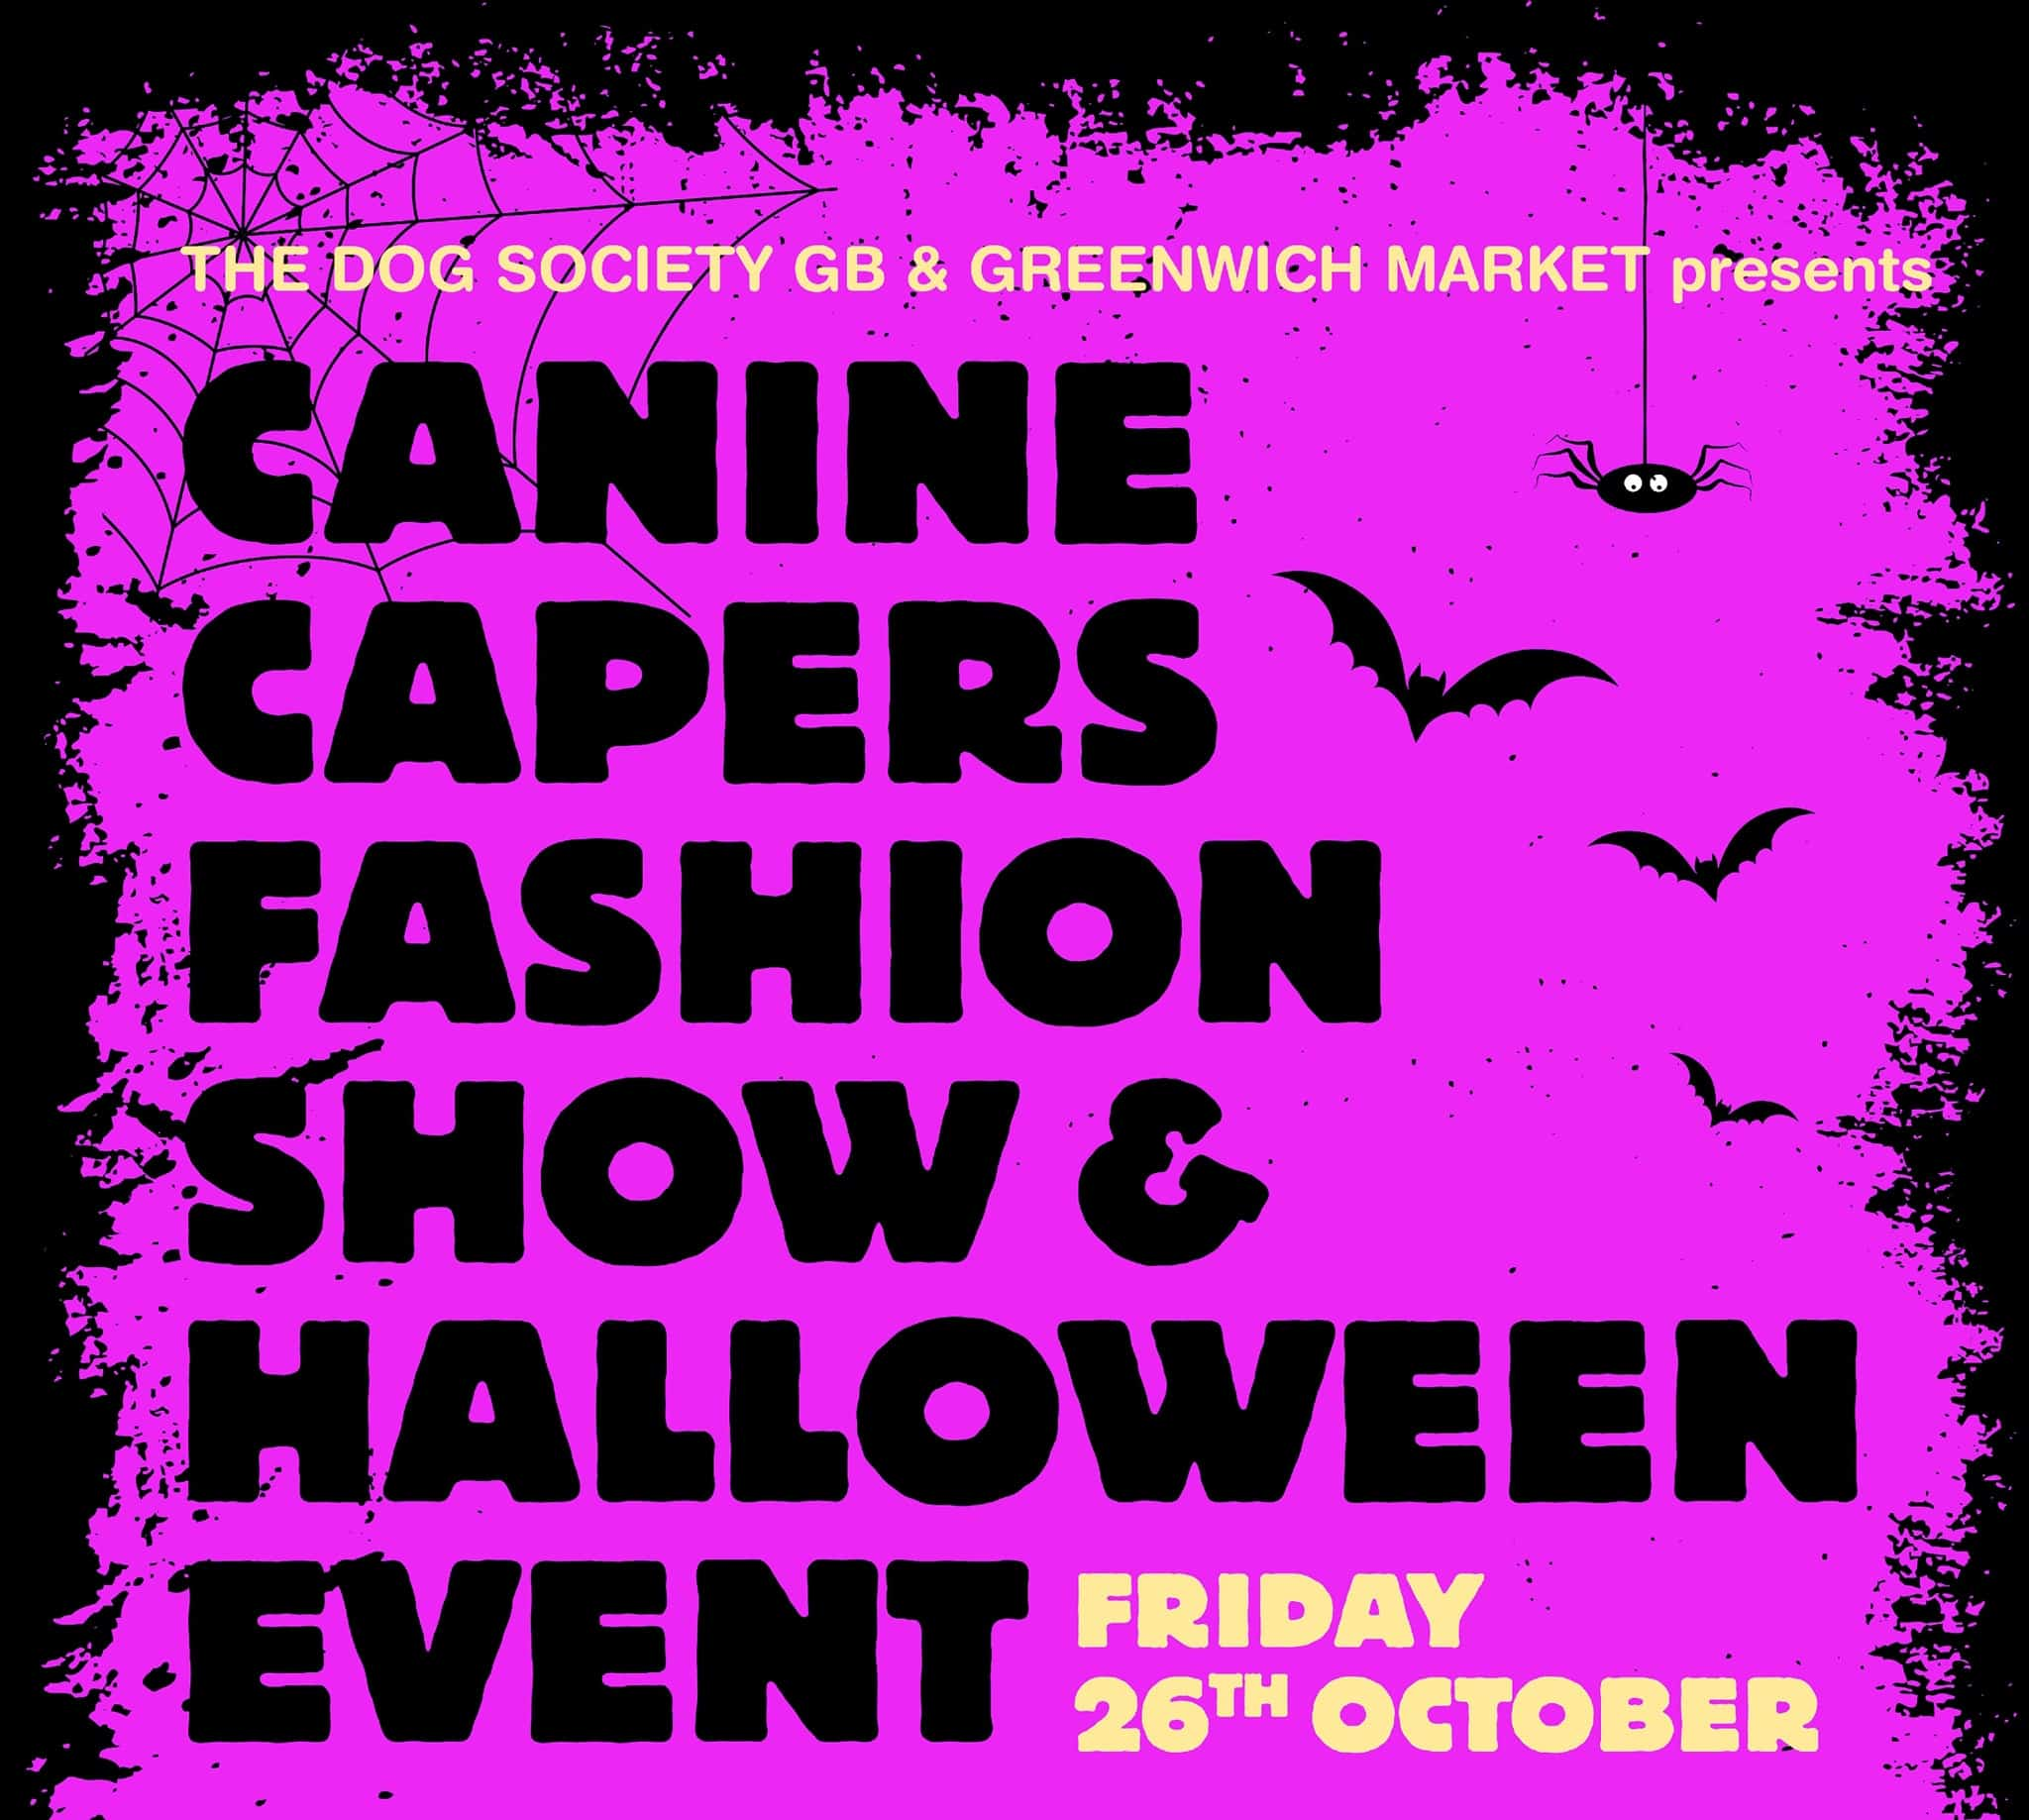 Canine Capers Fashion Show Fundraiser 2018